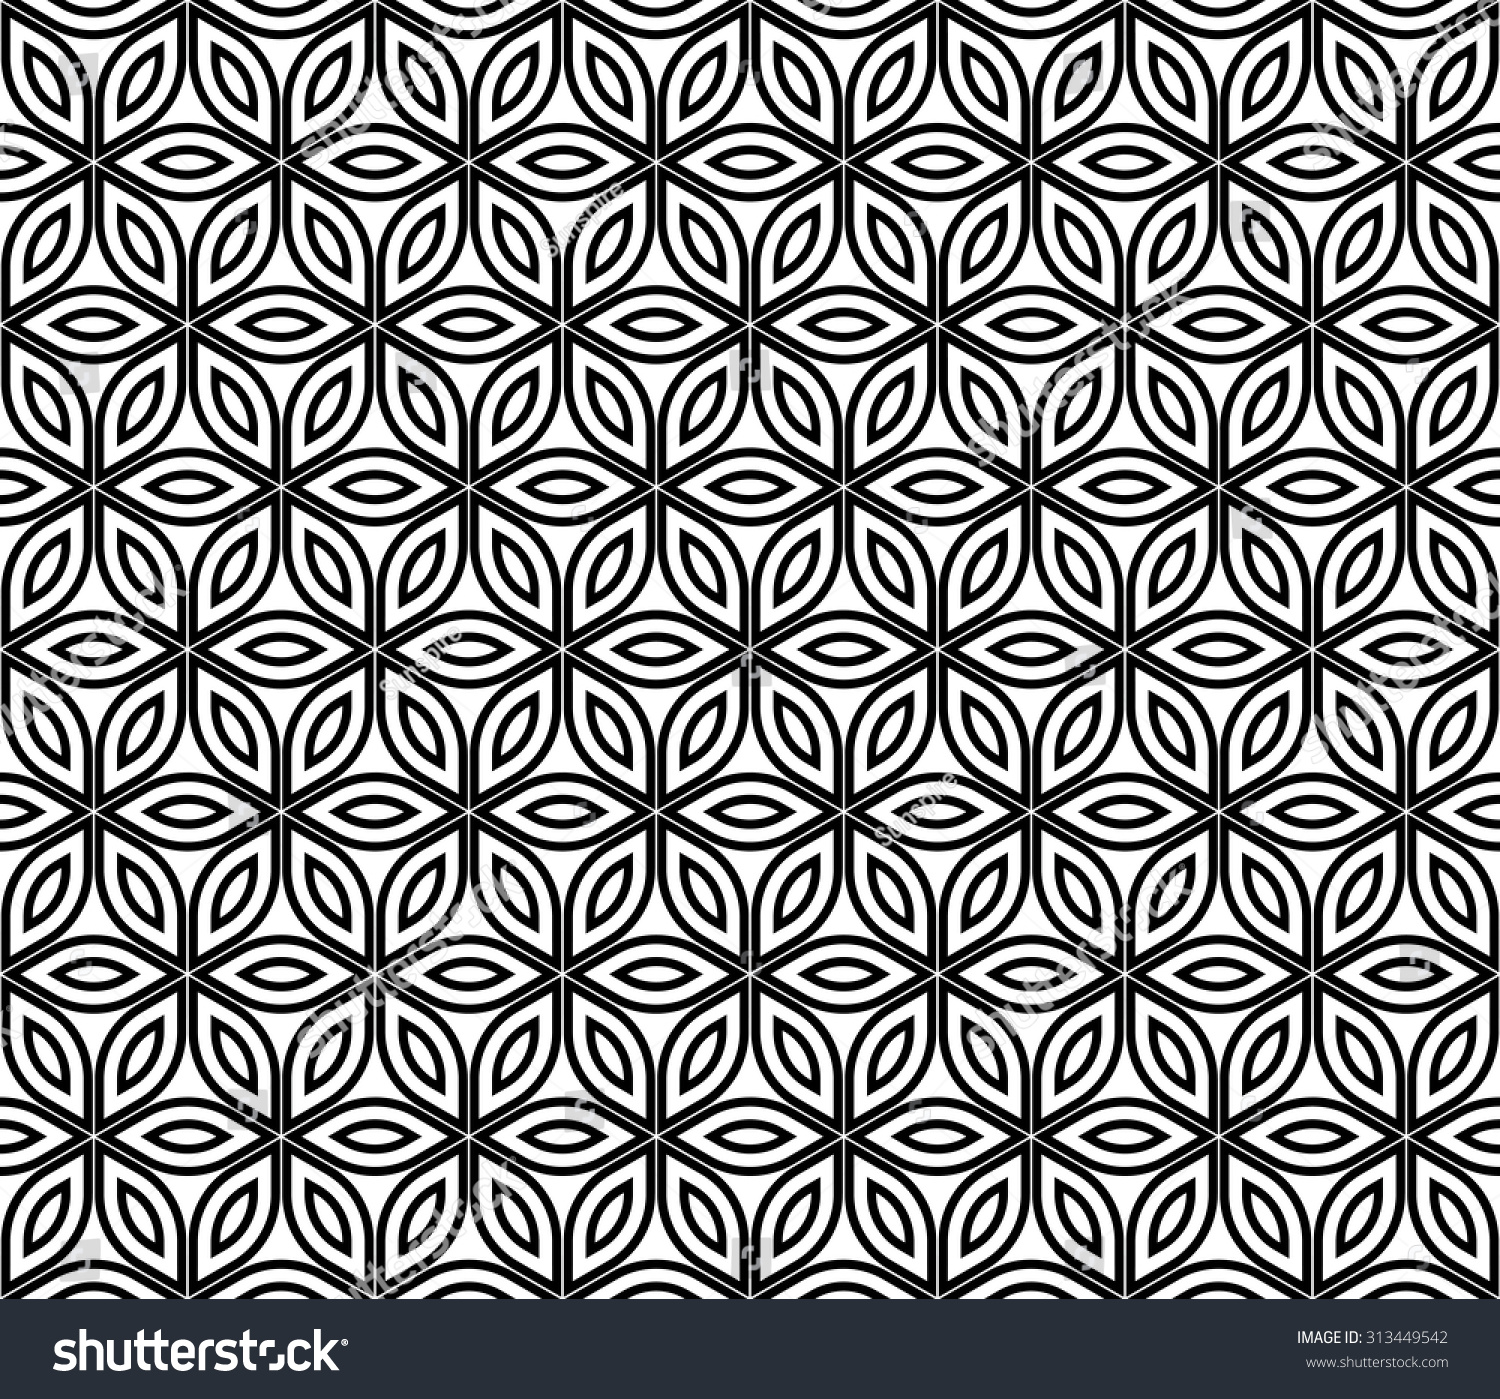 Bed sheet design texture - Vector Modern Seamless Pattern Sacred Geometry Black And White Textile Print Stylish Background